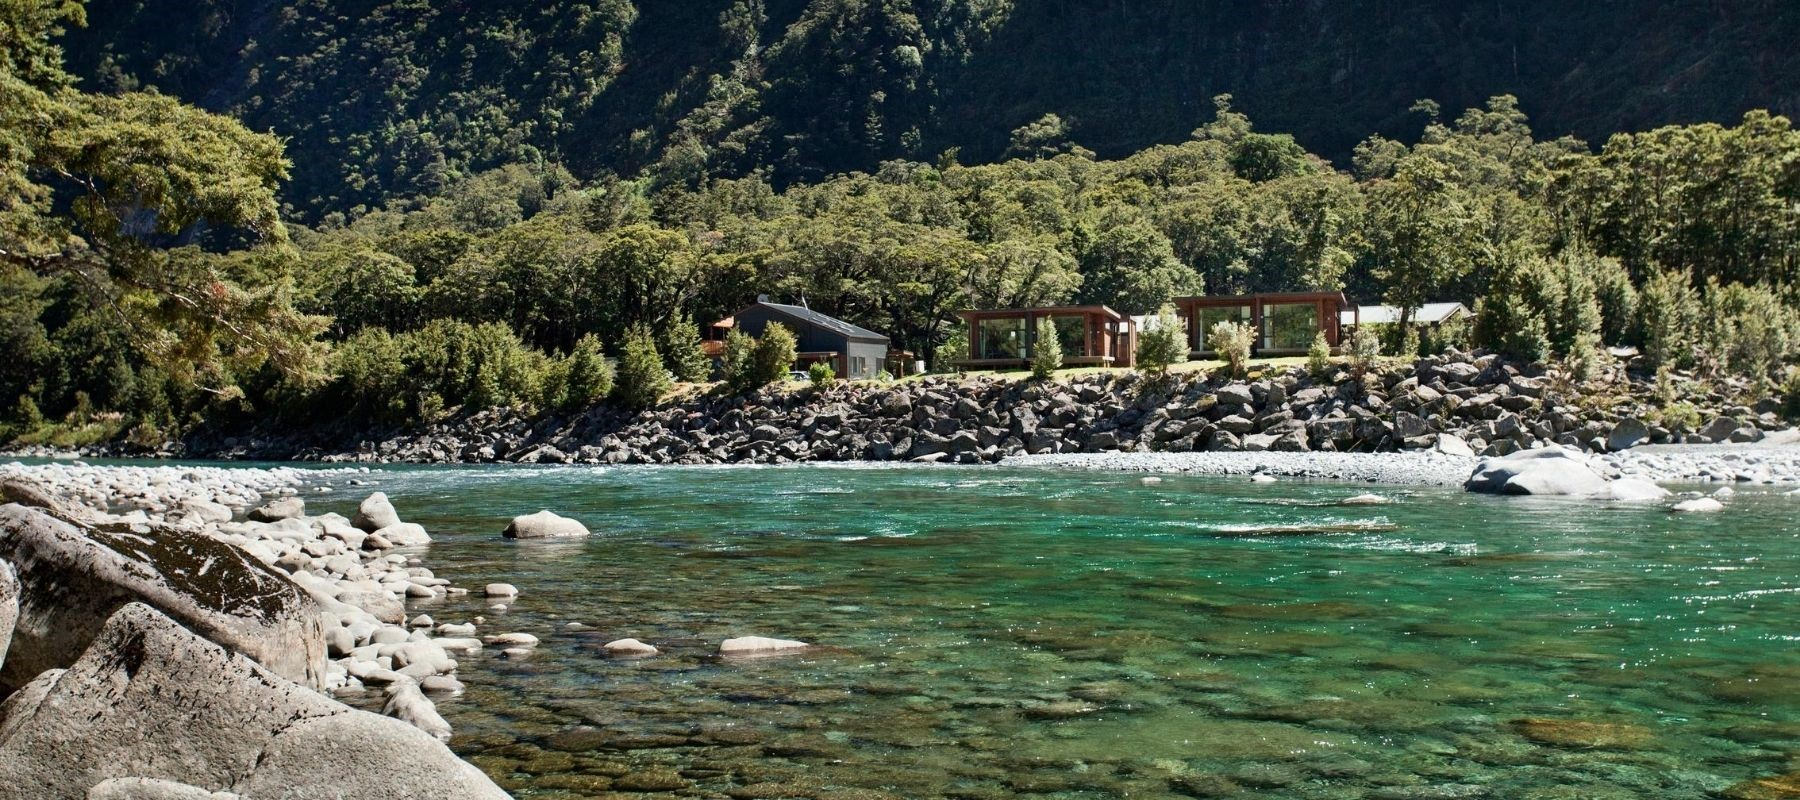 View of the flowing river with Milford Sound Lodge River Chalets in the background.